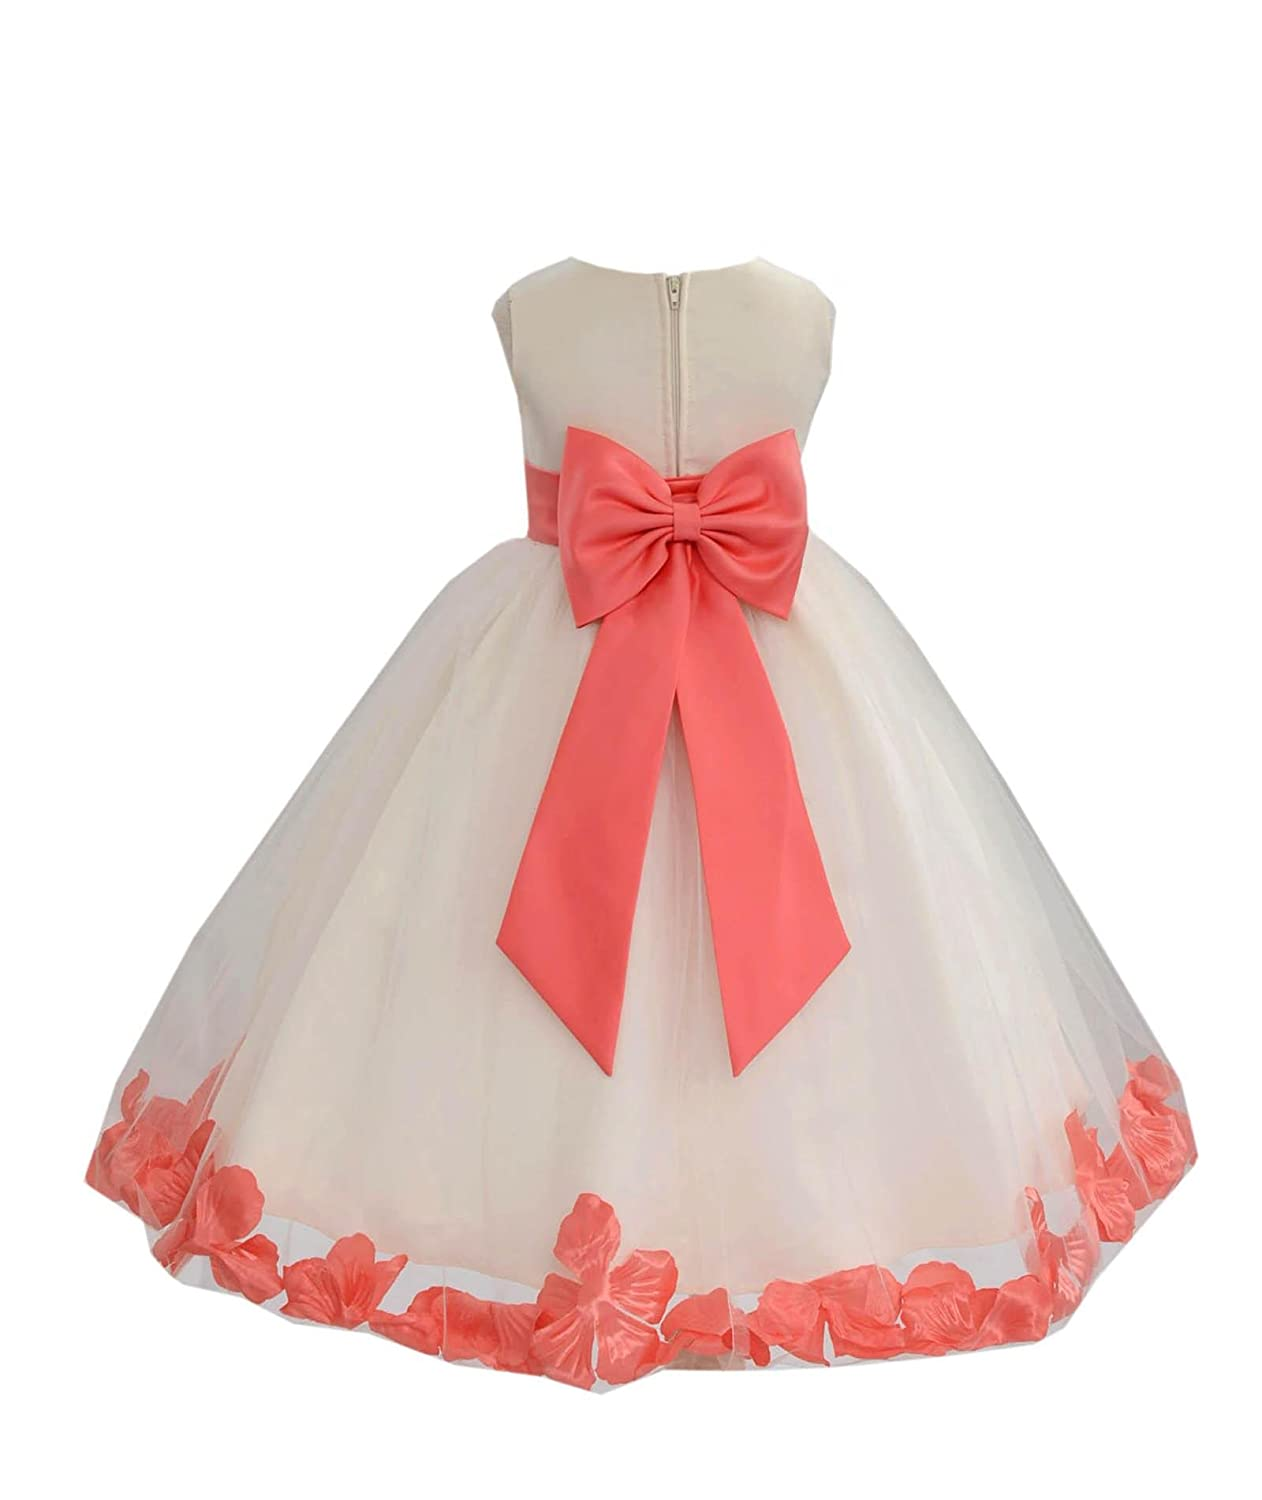 Amazon.com: Wedding Pageant Flower Petals Girl Ivory Dress with Bow ...